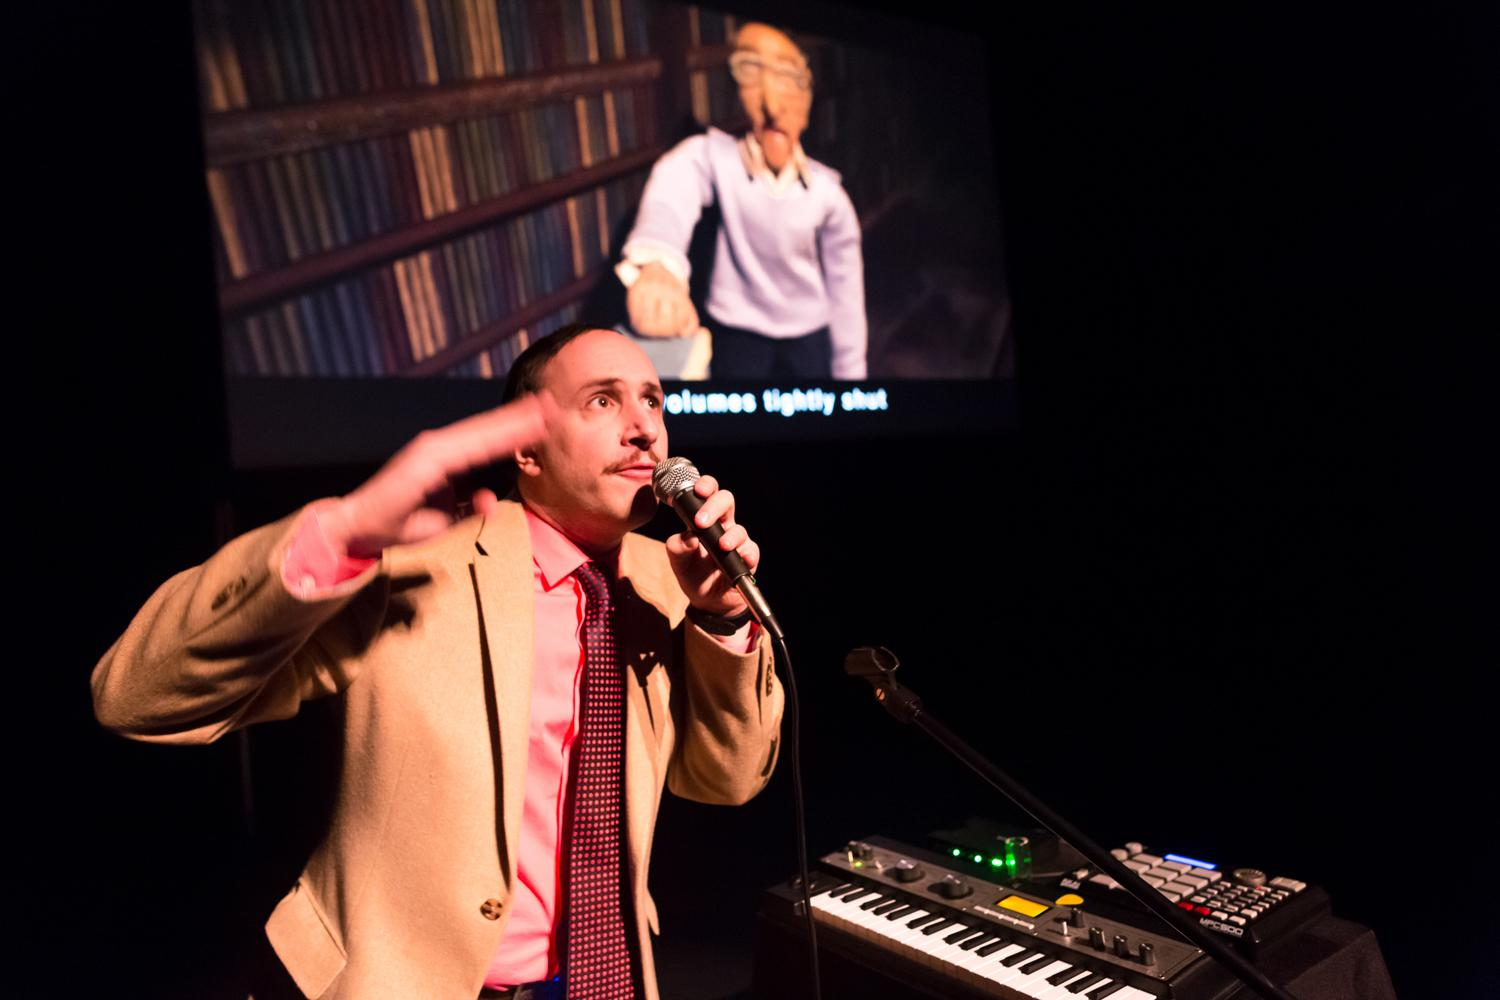 A man in a suit and tie stands near an electronic keyboard, gesturing with one hand and holding a microphone in the other. A video of an old man is projected in the background.